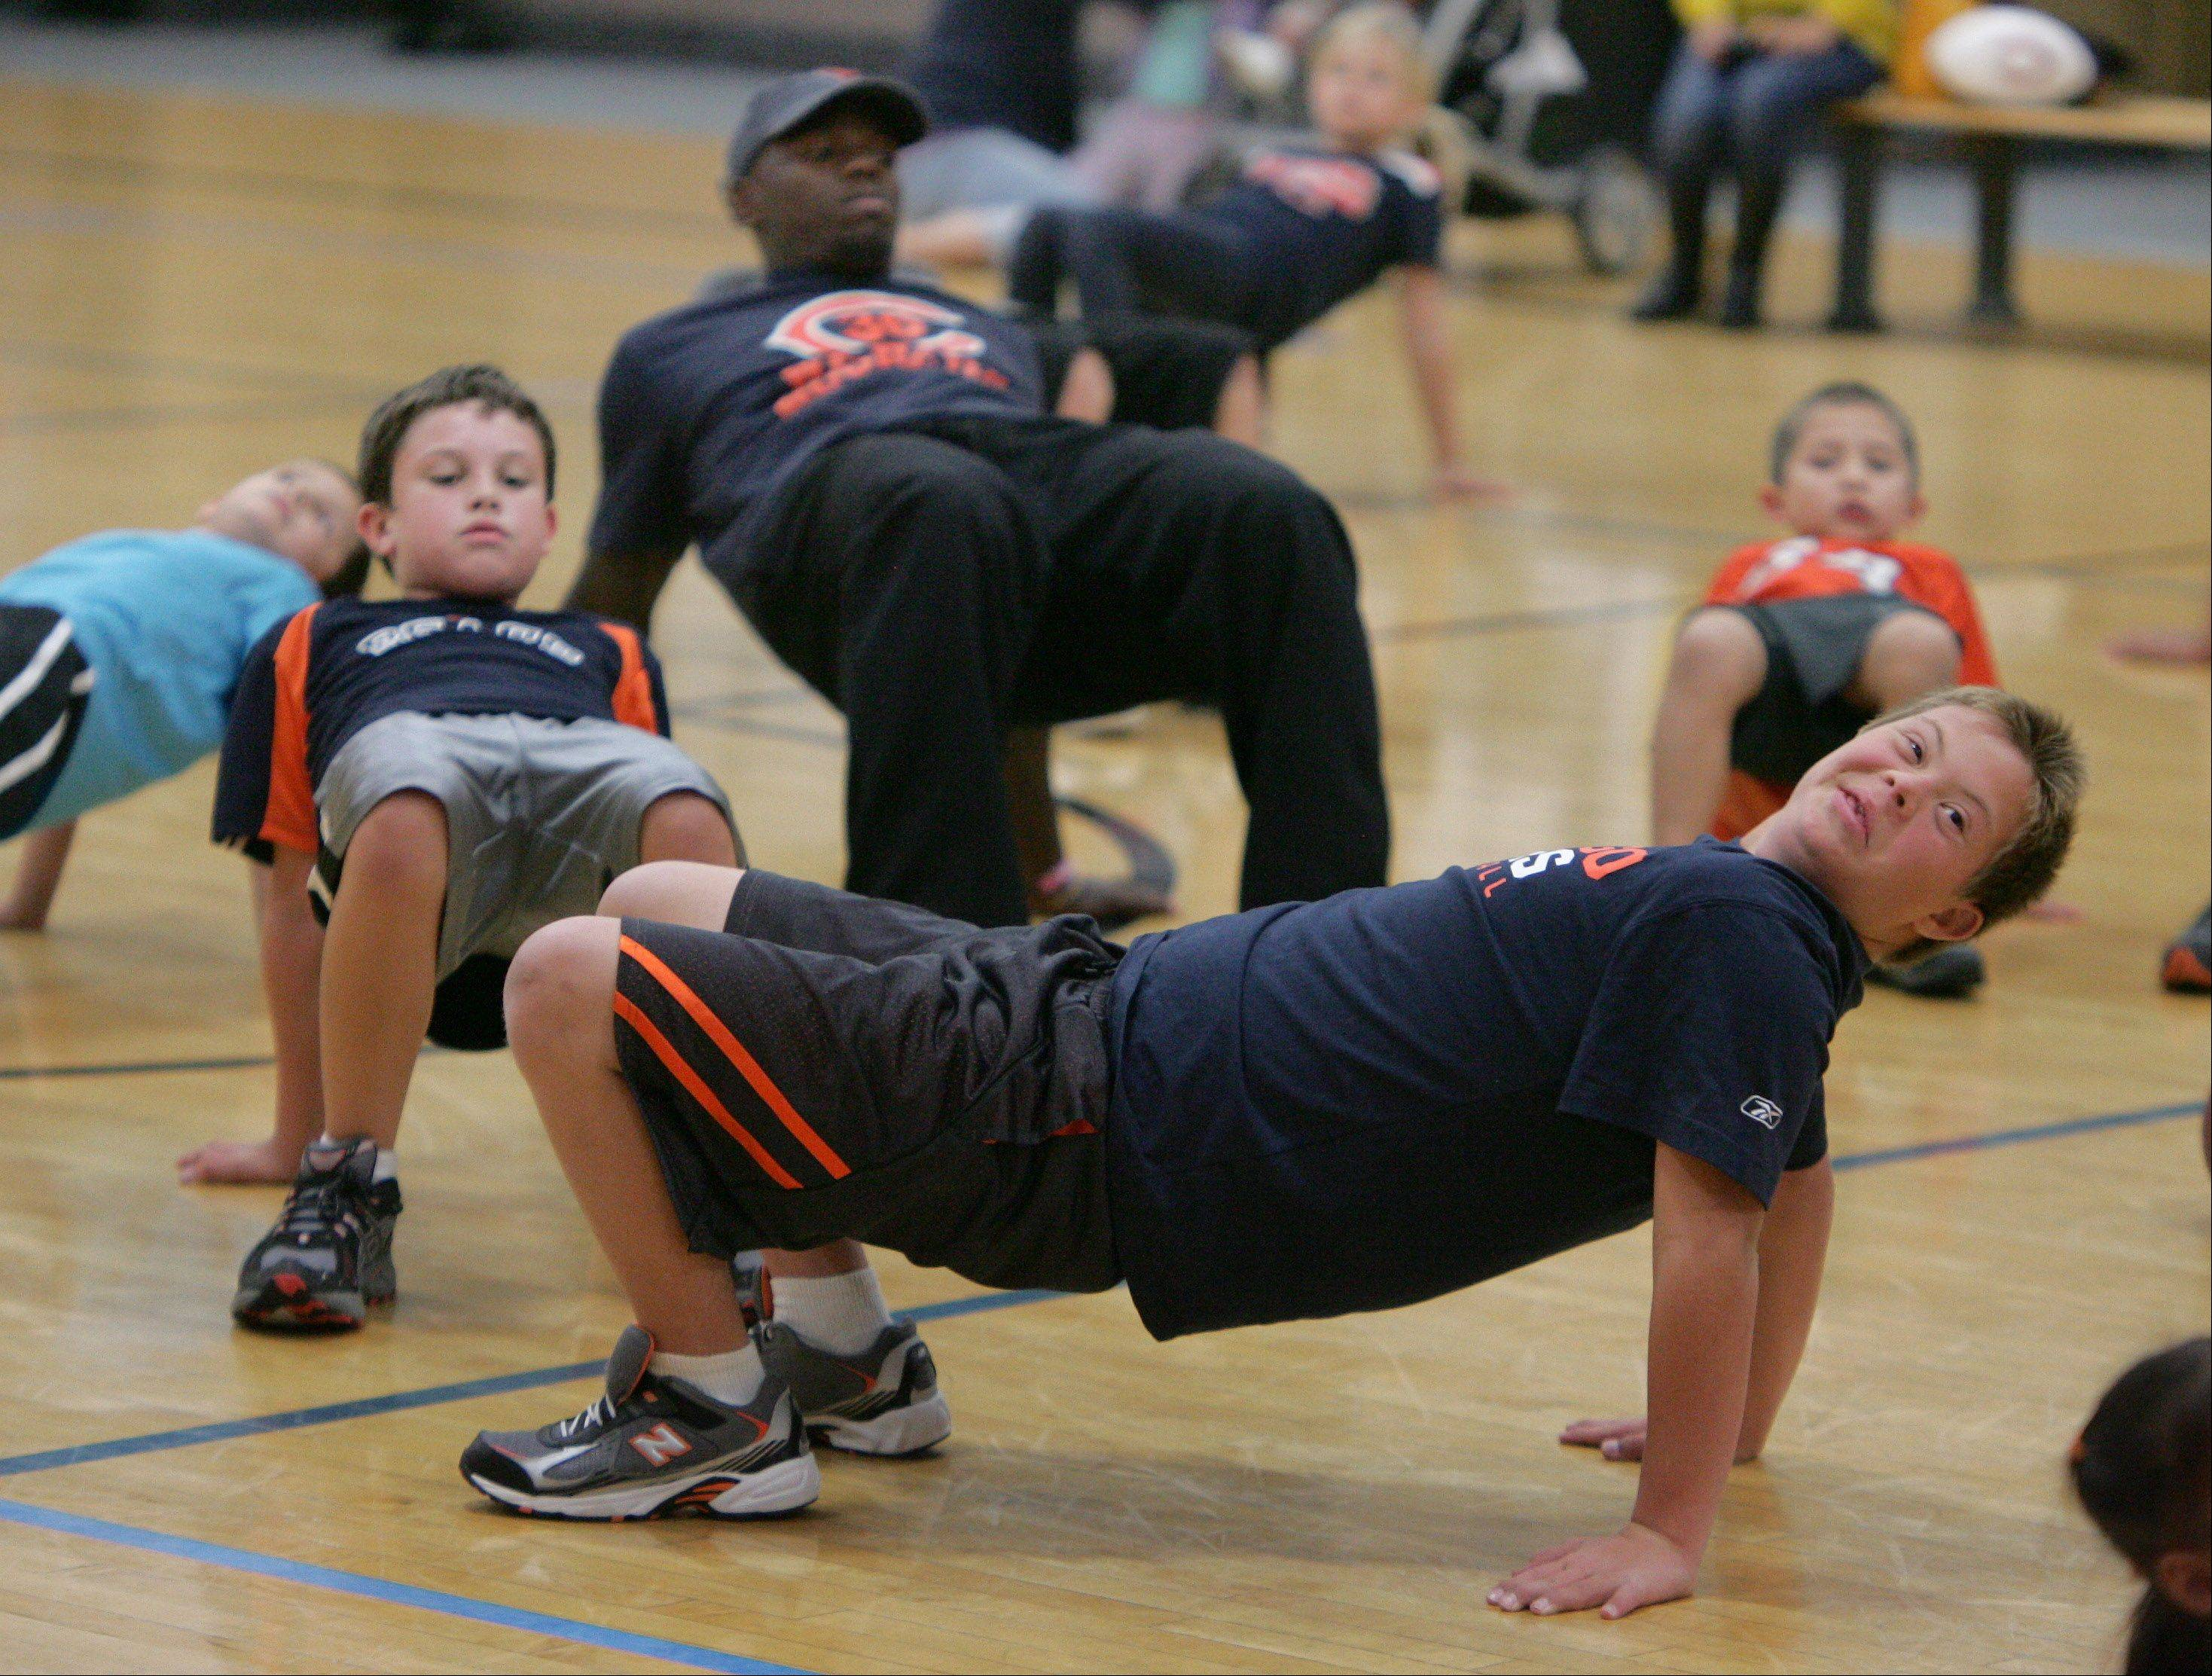 Gilbert R. Boucher II/gboucher@dailyherald.comBrett Wilkinson, 13, of Arlington Heights, makes a back bridge as he exercises with Chicago Bears cornerback D.J. Moore and other children Monday at the Midtown Athletic Club in Palatine as part of the Fuel Up to Play 60 fitness program. The 10th Annual Midtown 5k Run and Walk will kickoff on Saturday, September 29th, to raise money for the Bears Care charity.